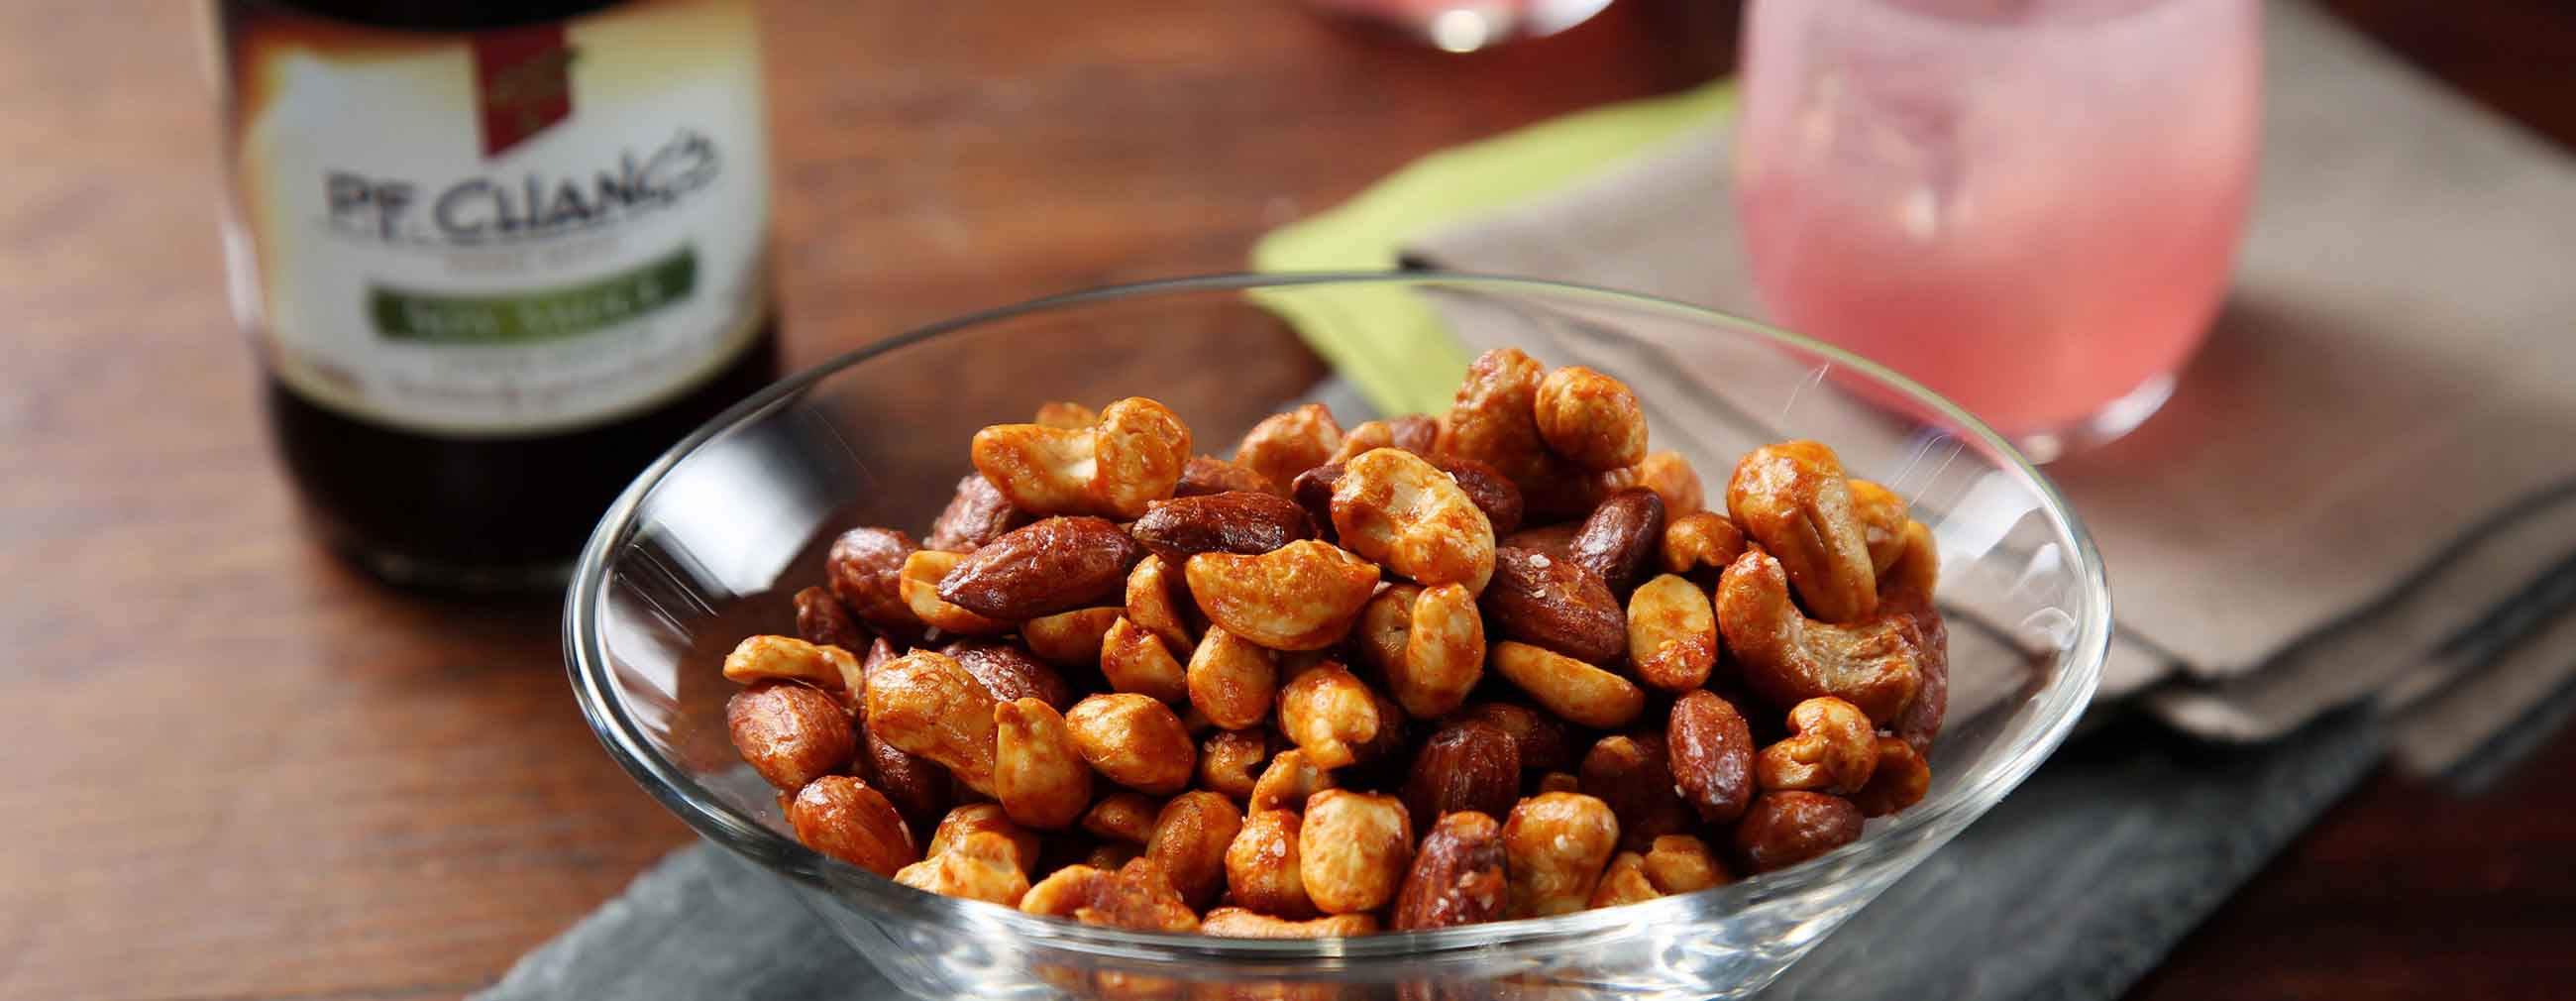 Spicy Soy-Coconut Mixed Nuts